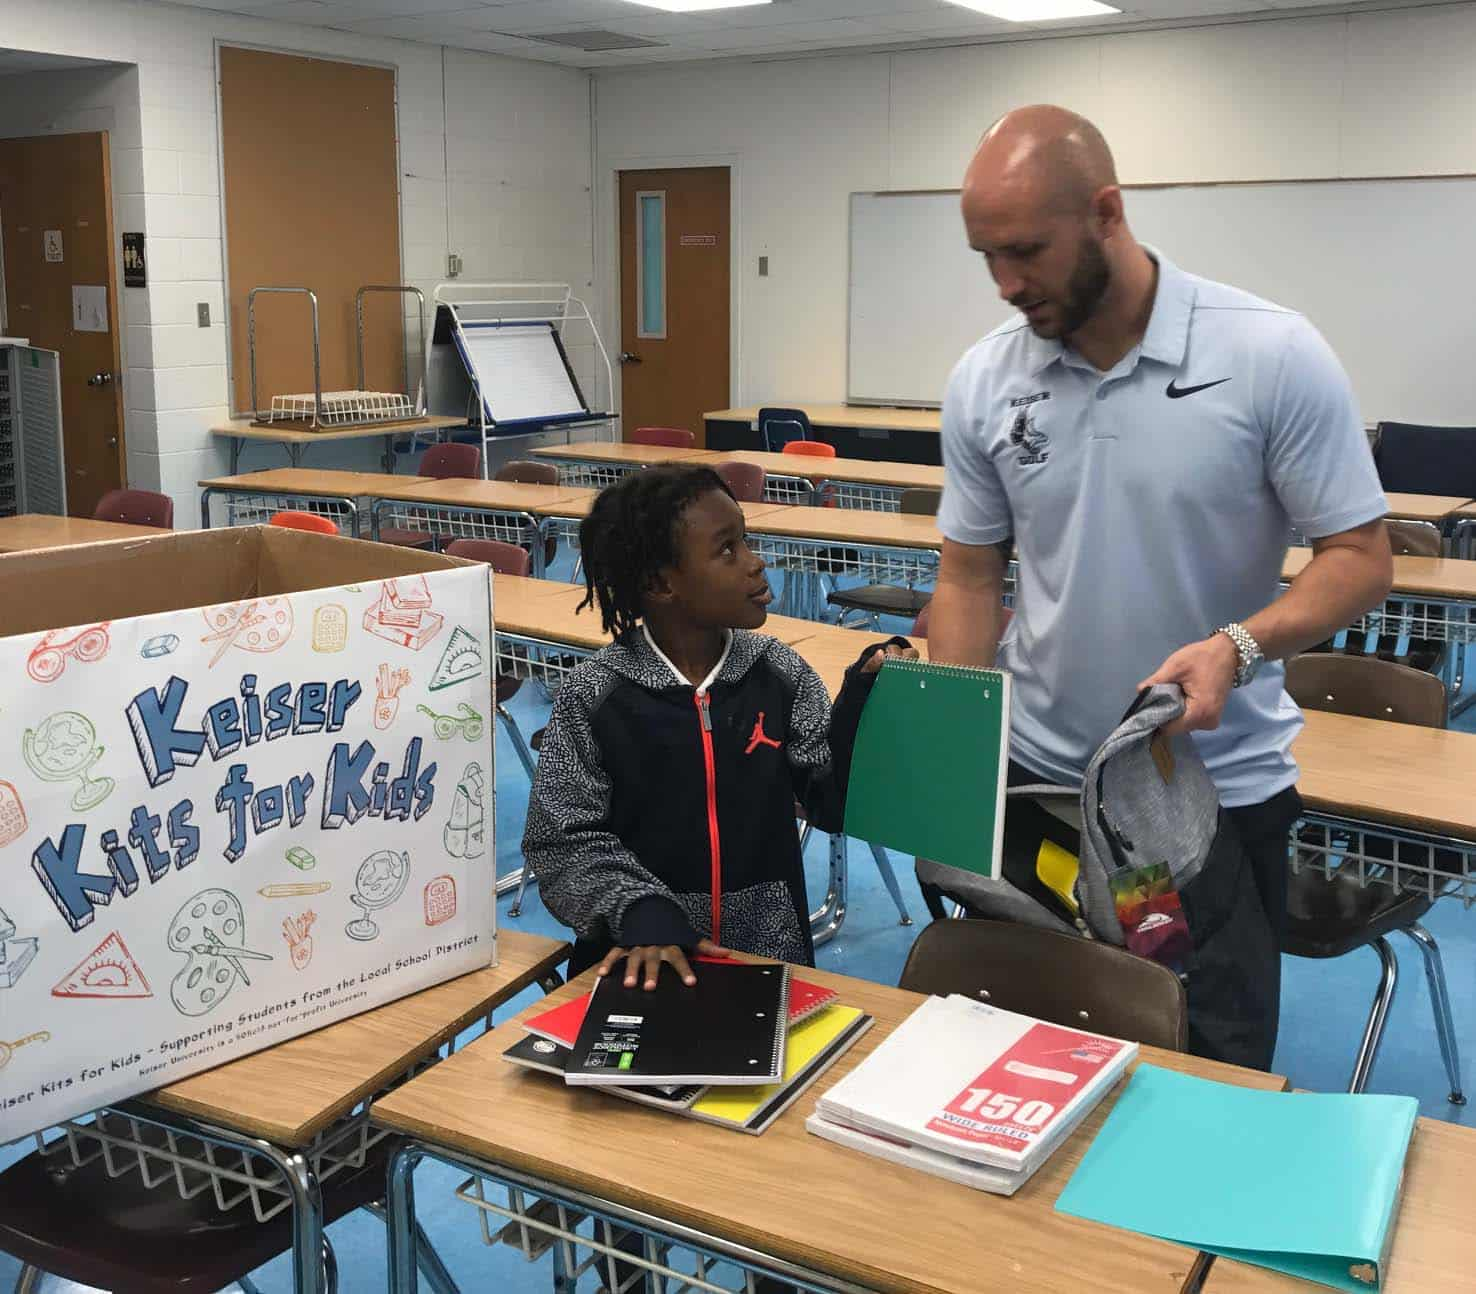 Flagship Campus' Keiser Kits for Kids Benefits Local Elementary School